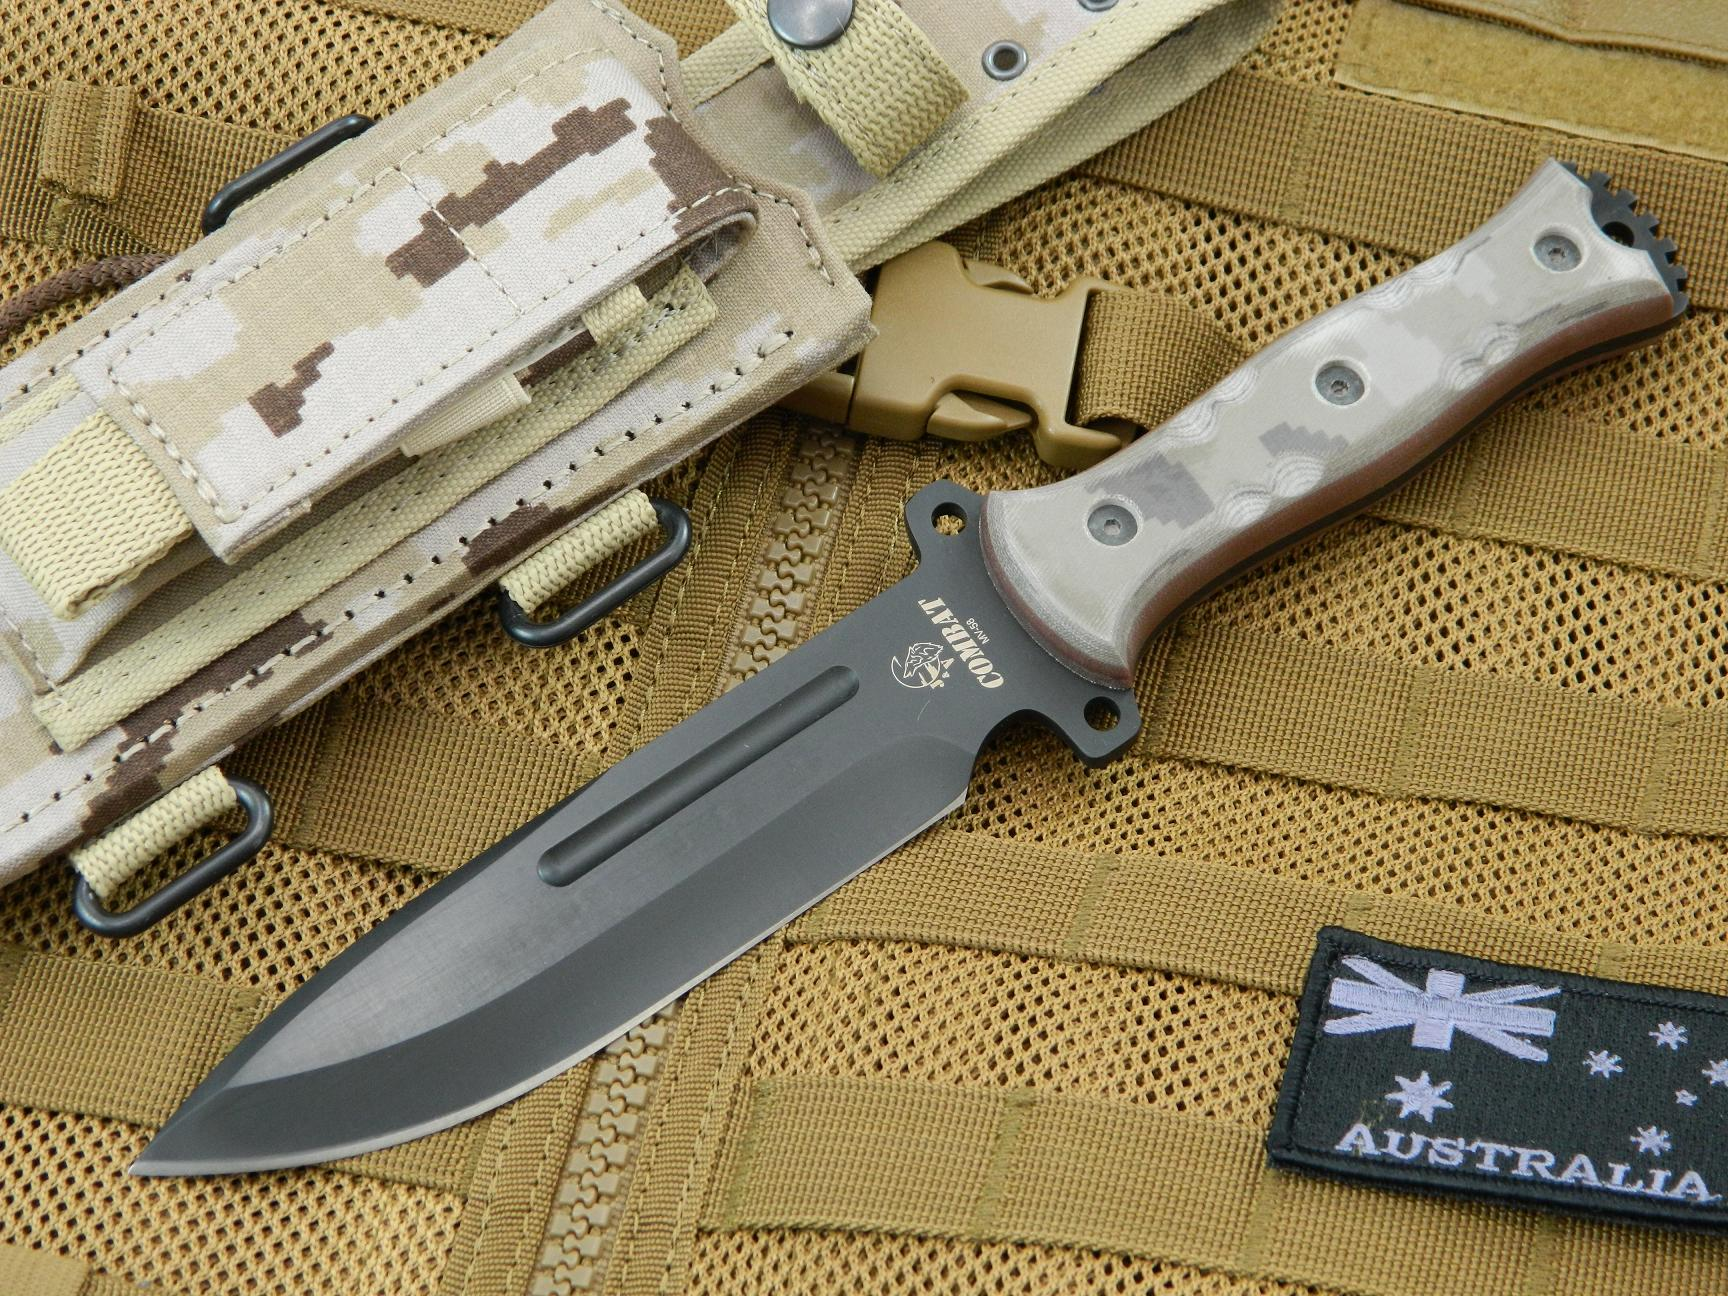 Combat Knives Kizlyar Knives Australia Knives And Outdoor